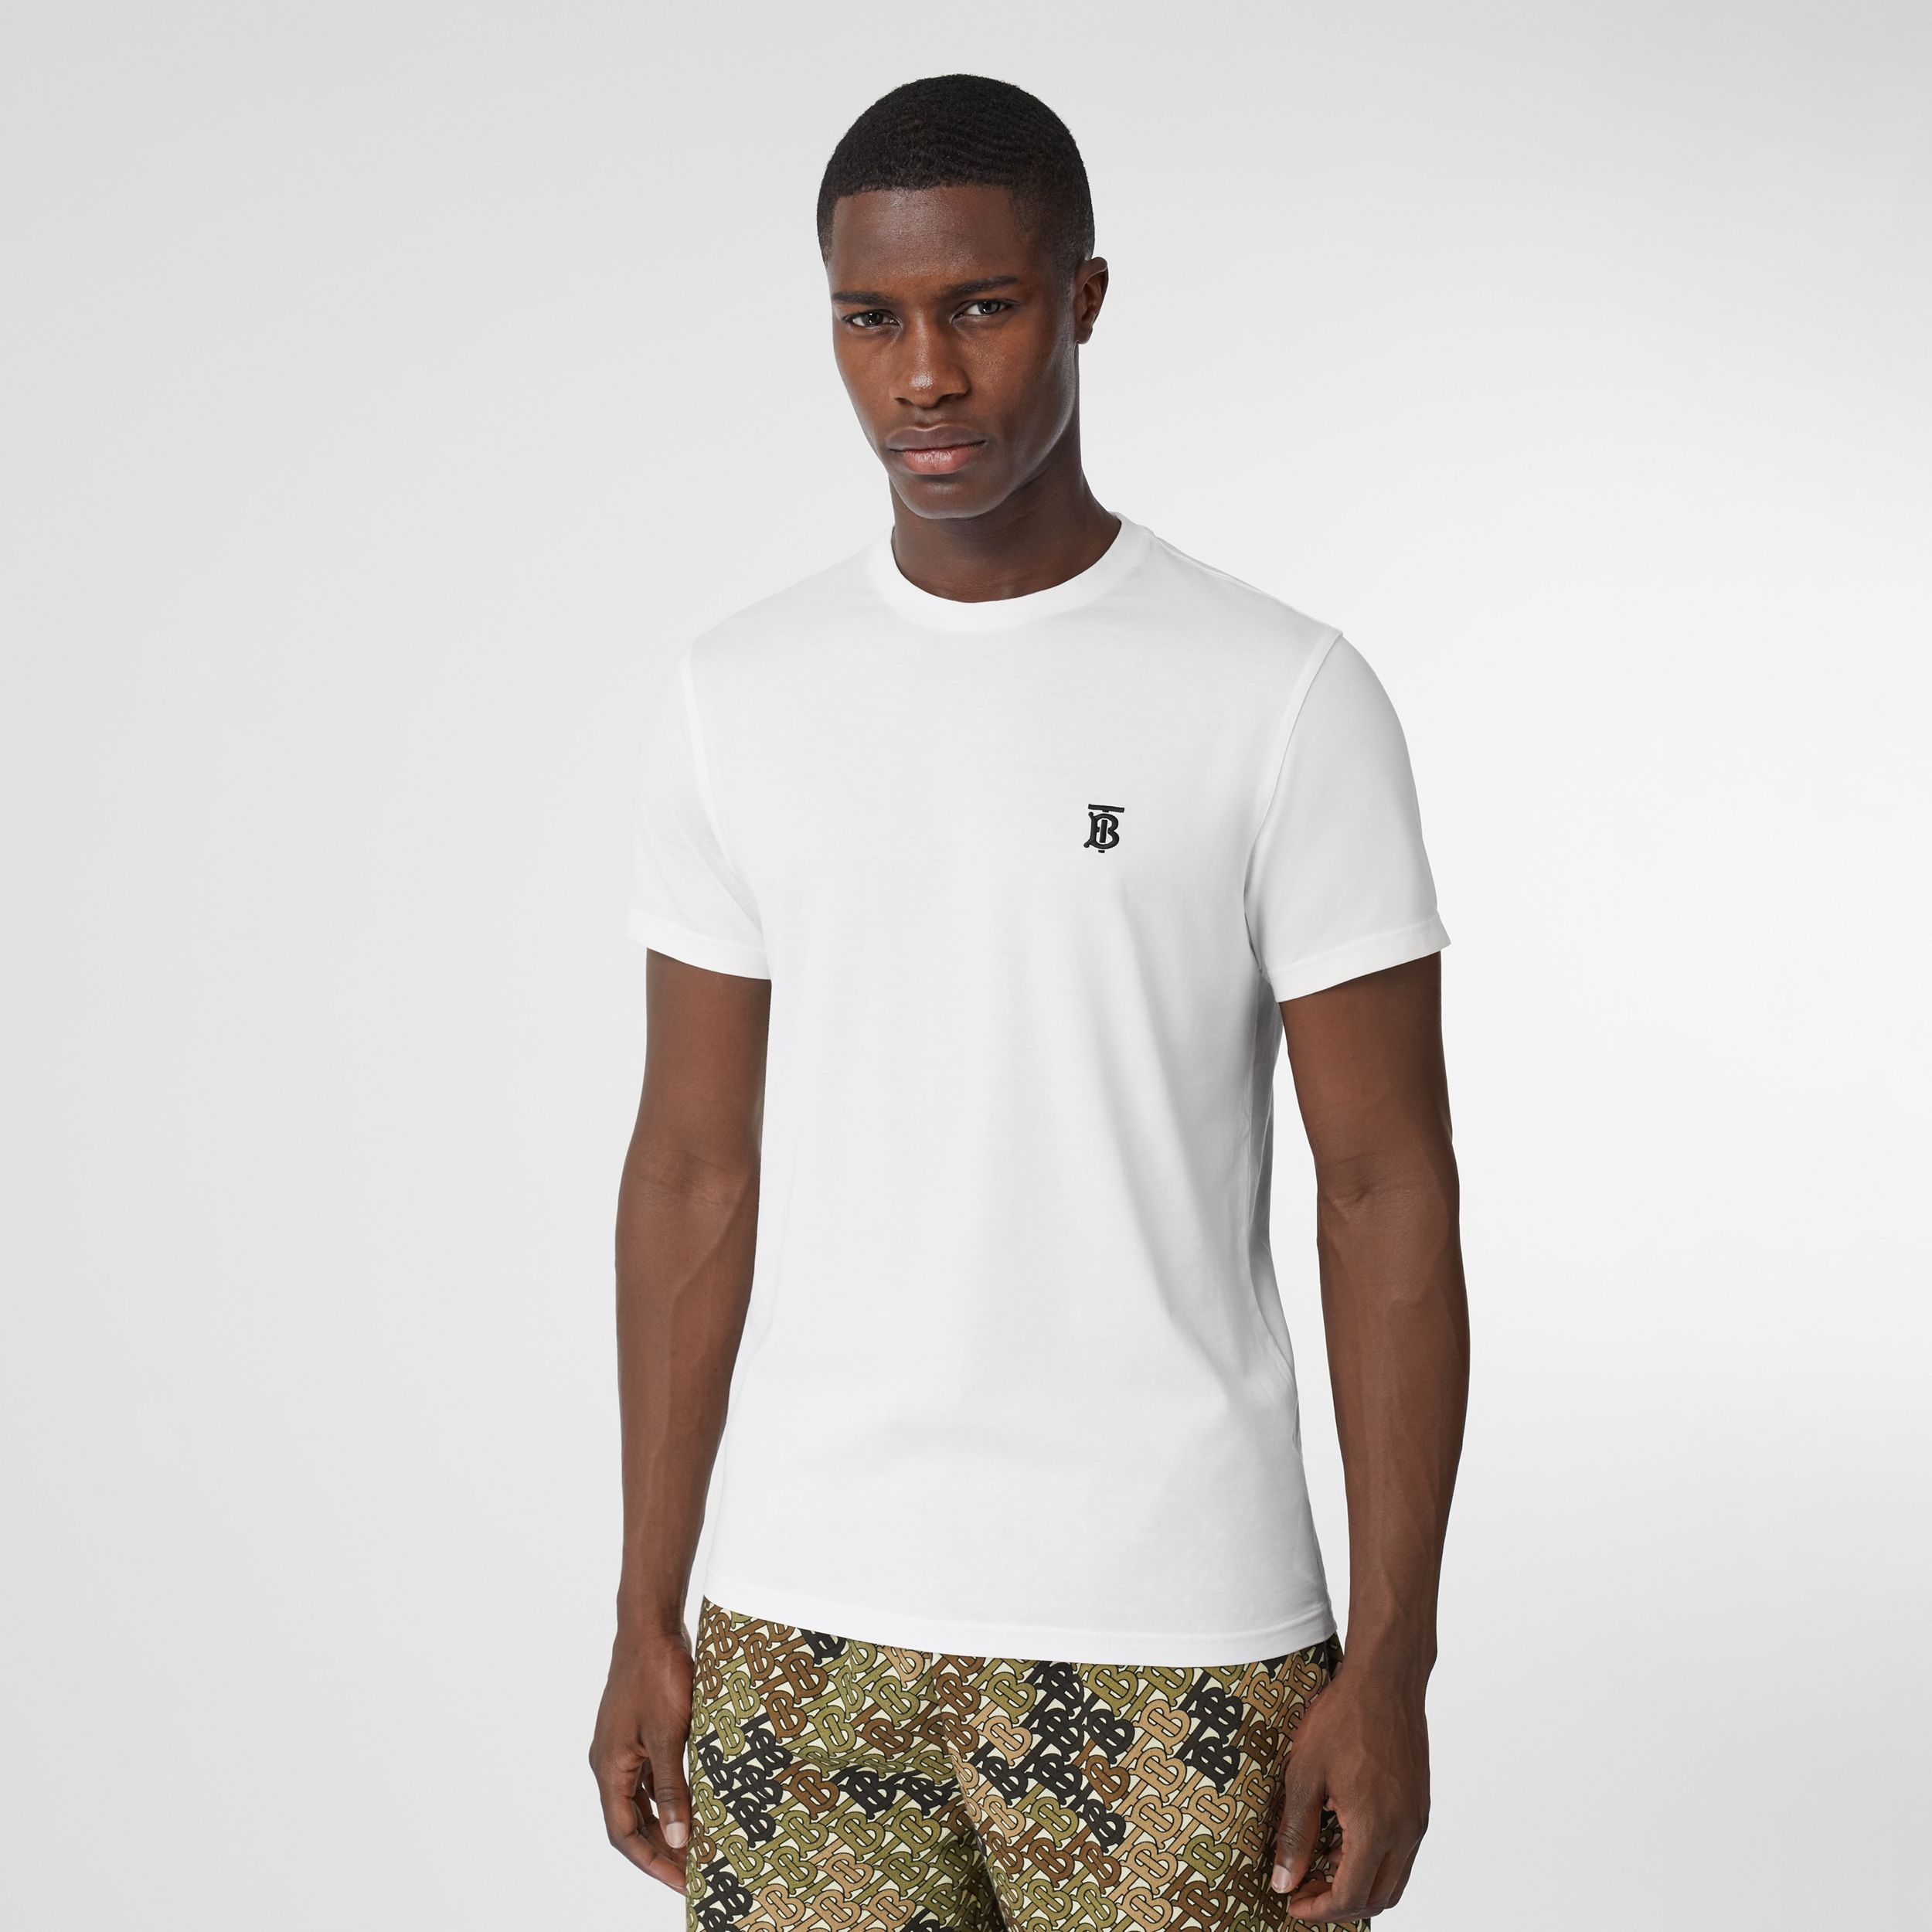 Monogram Motif Cotton T-shirt in White - Men | Burberry Hong Kong S.A.R. - 1